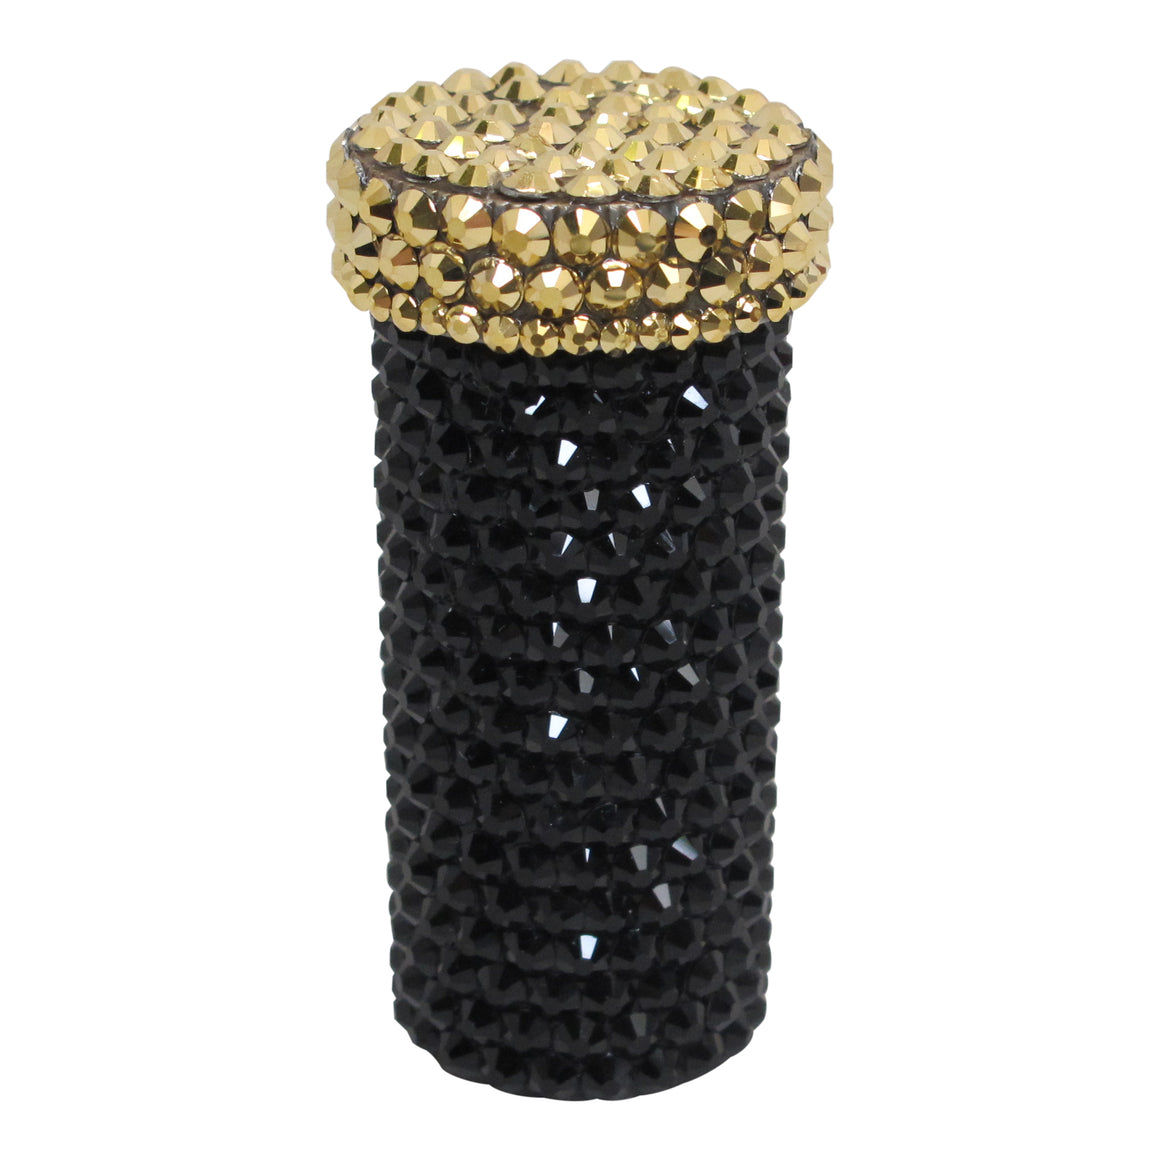 Crystal Pill Bottle in Black + Gold